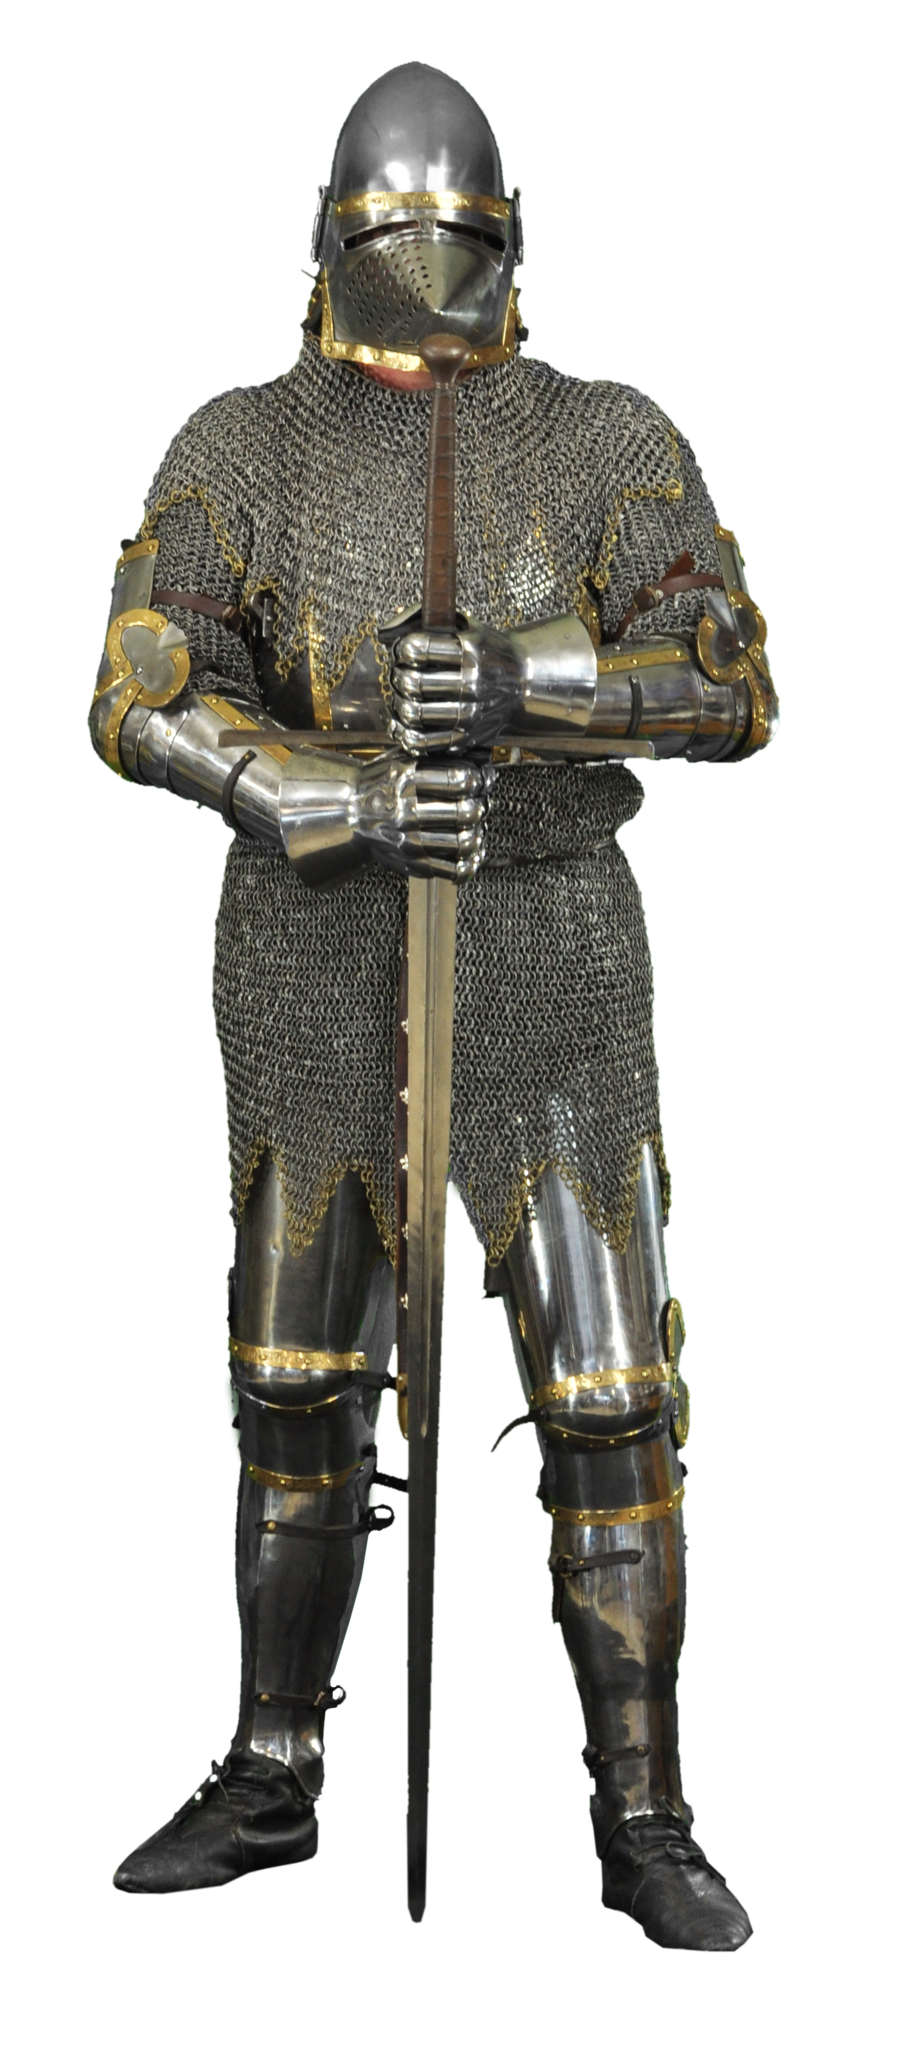 Armour png images free. Knights clipart history british